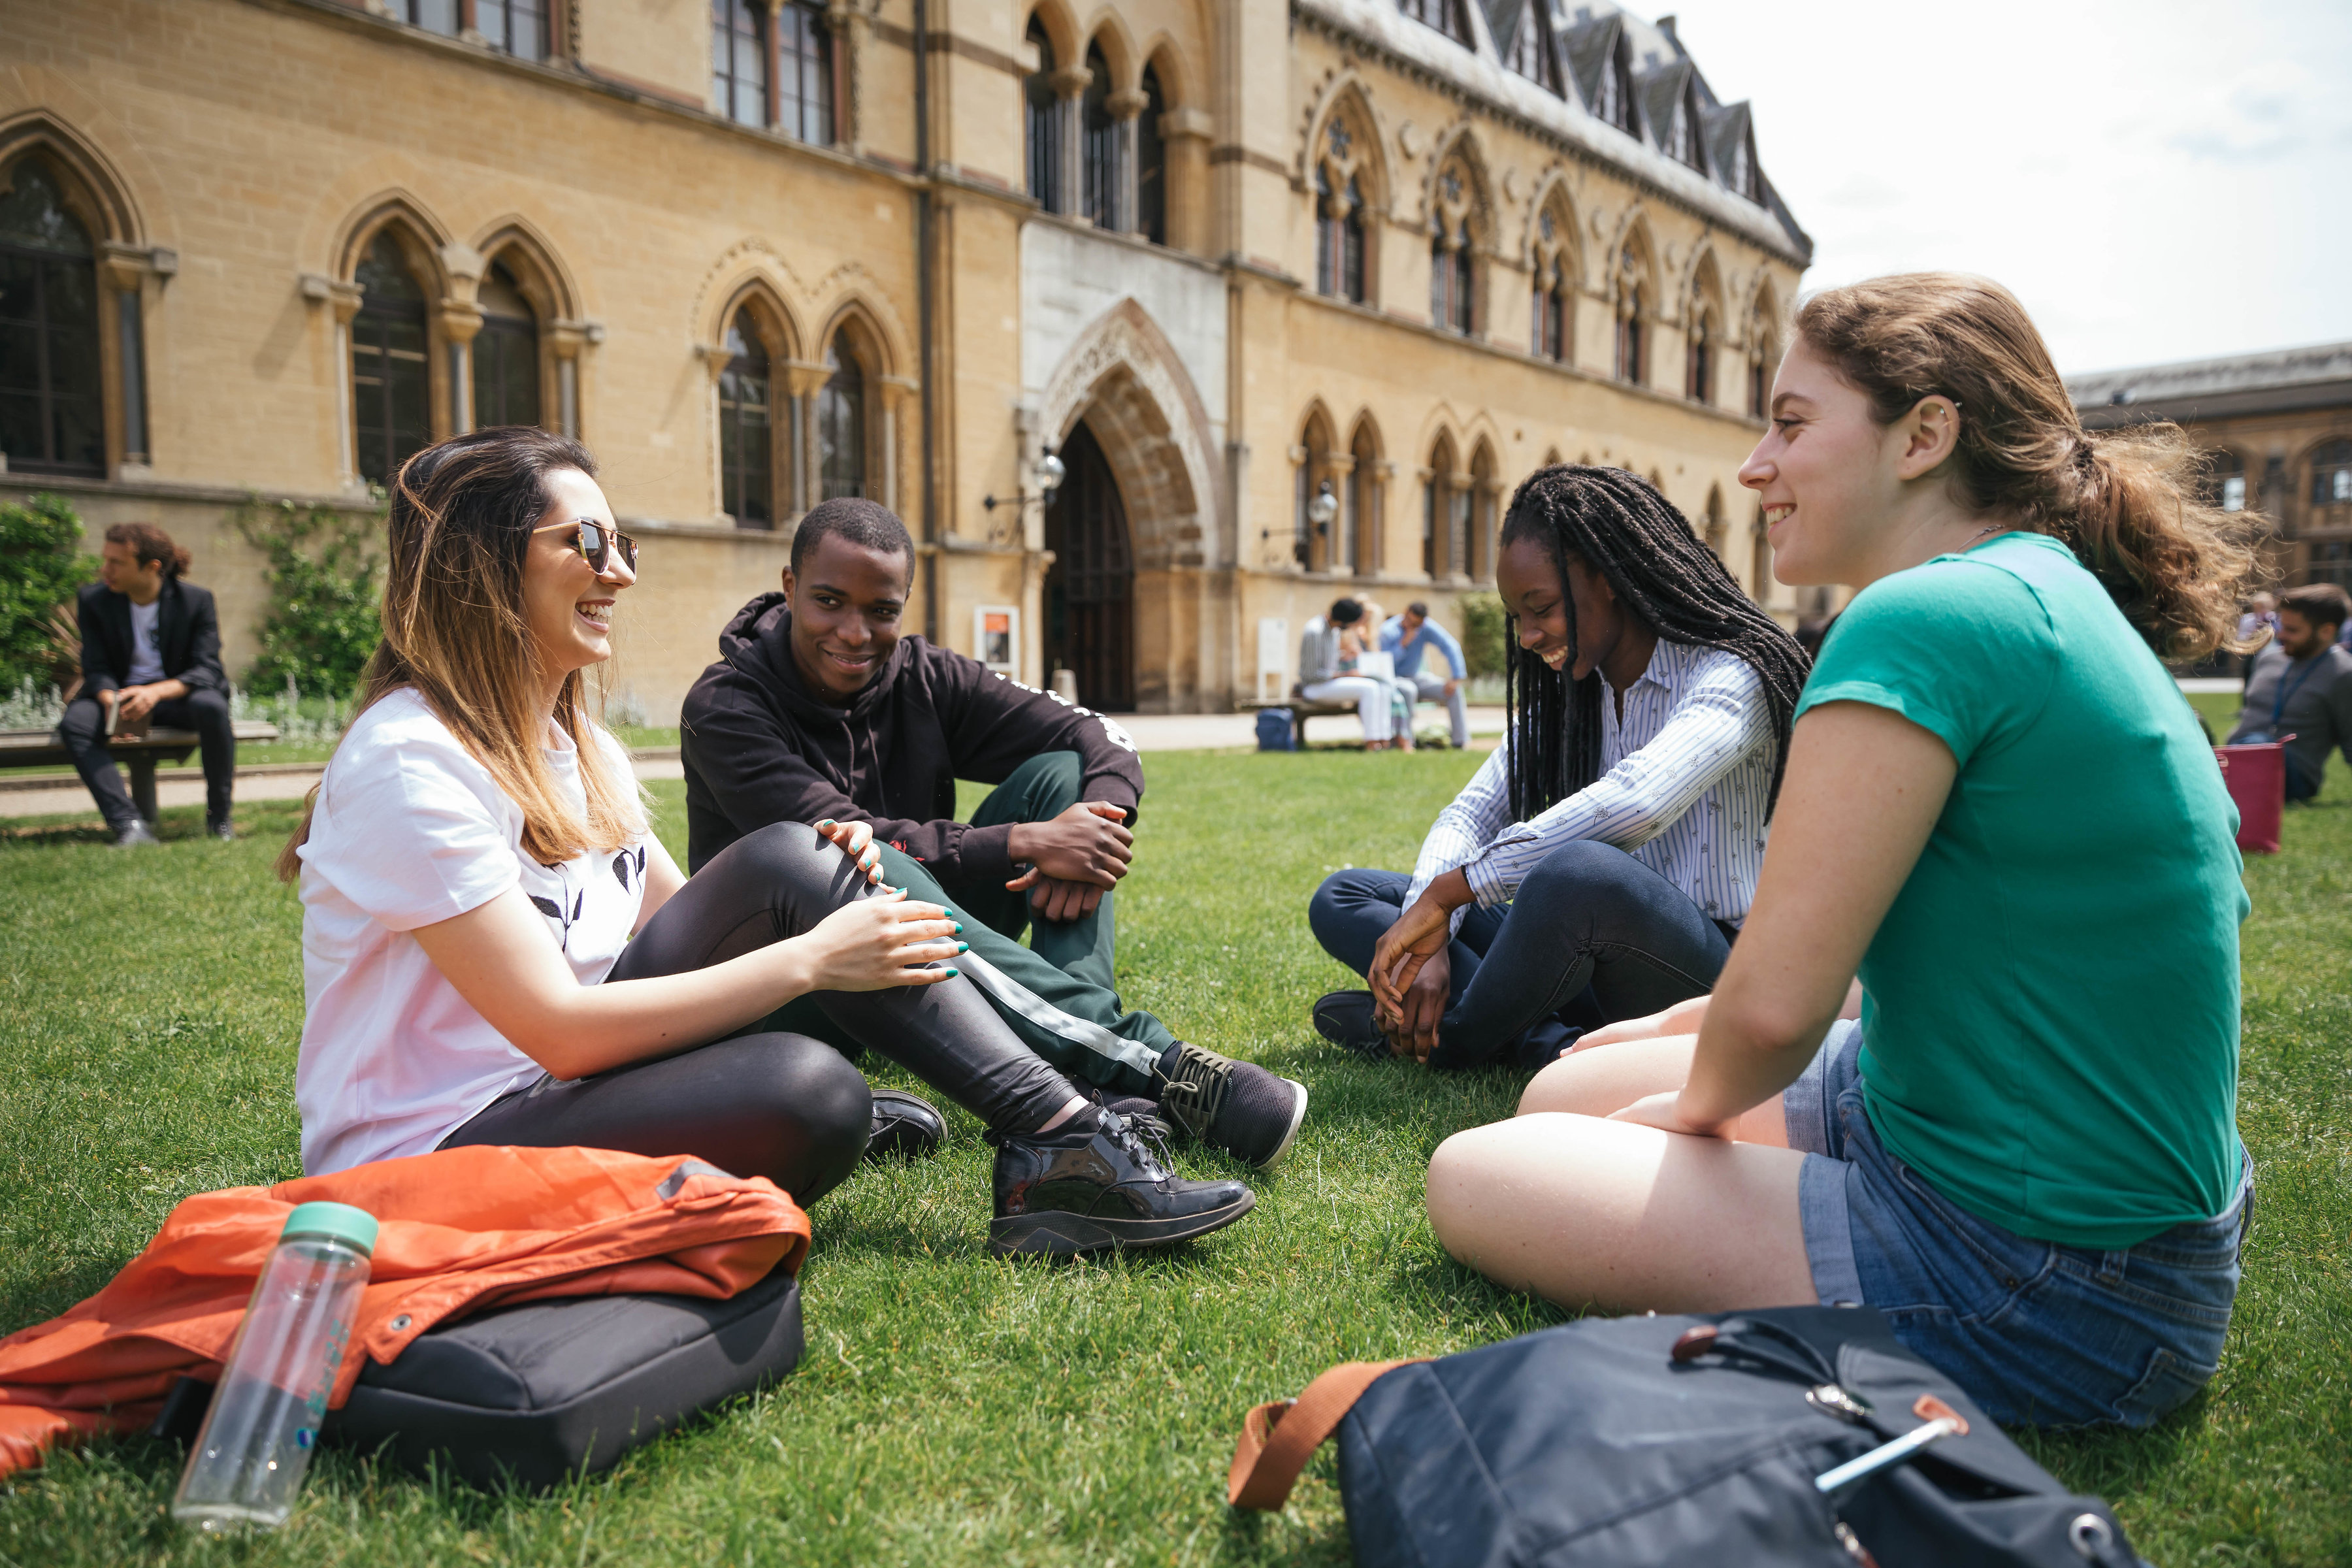 Four students sat chatting on the grass outside the Oxford Museum of Natural History